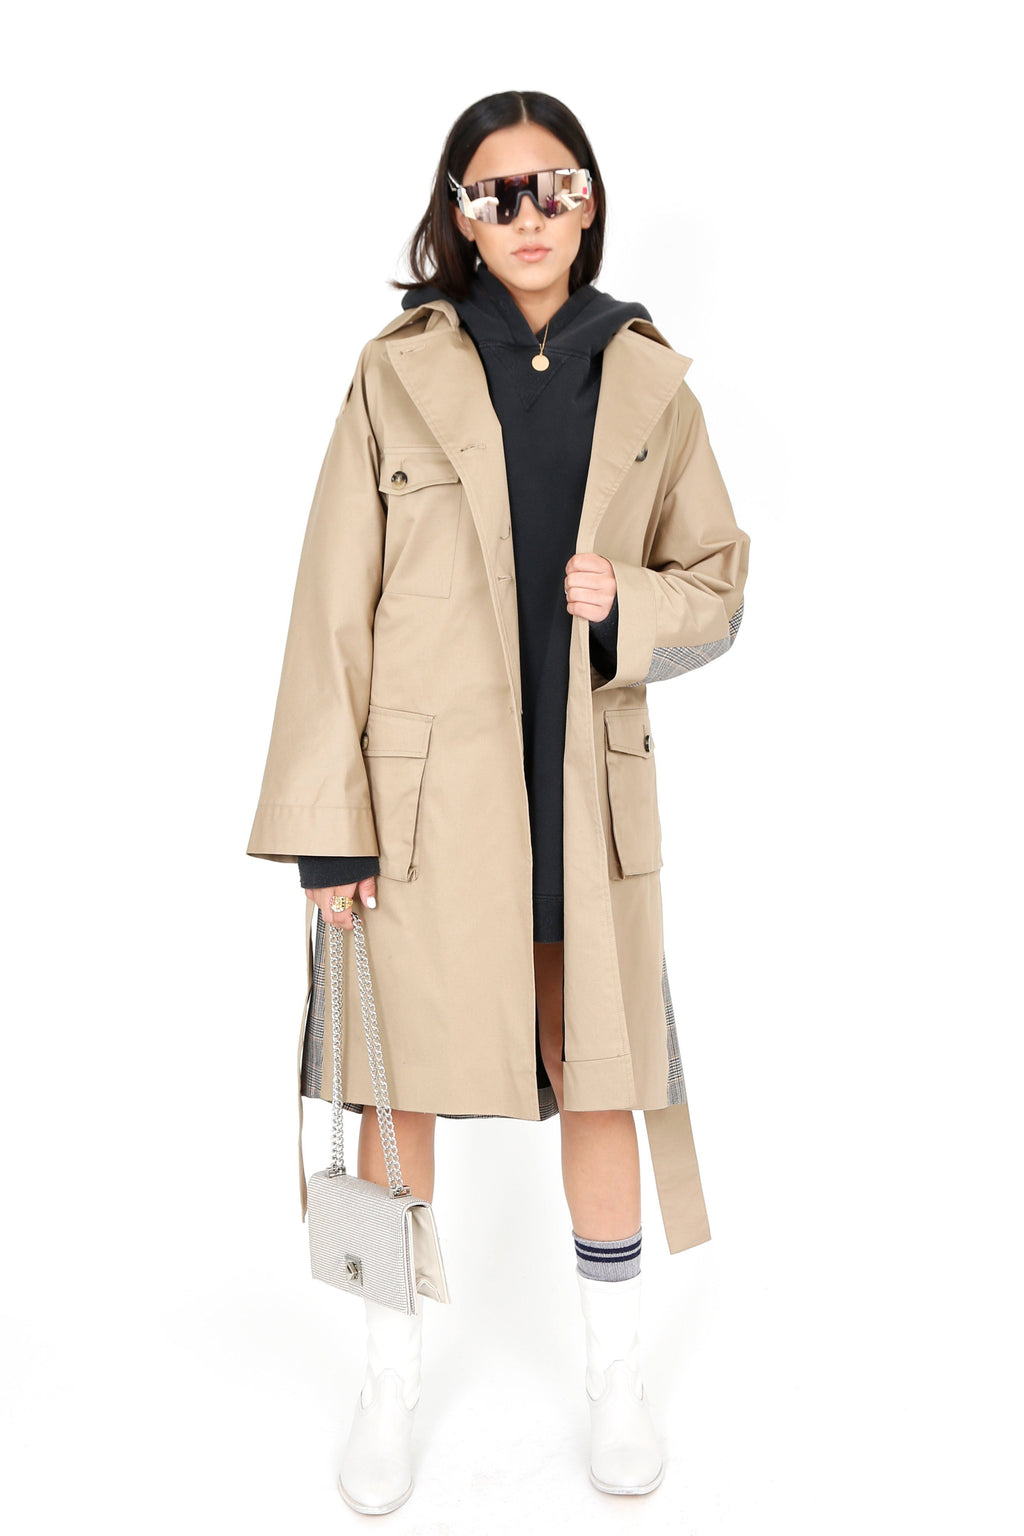 THE KOOPLES | Long Carreaux Trench - Beige